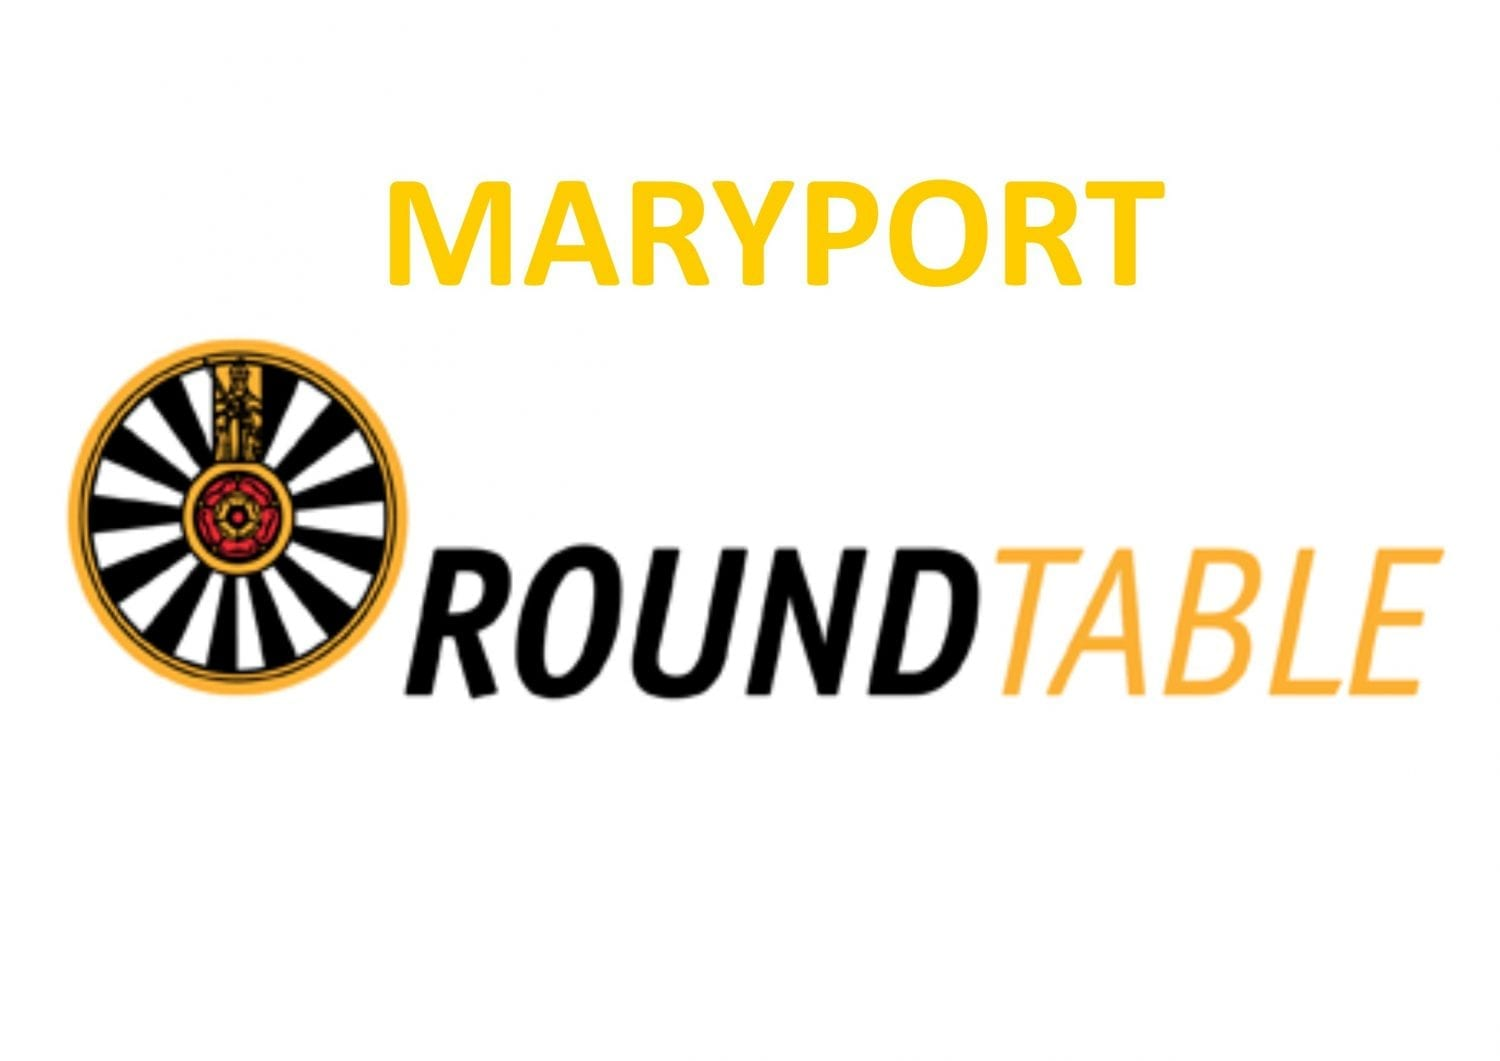 Round table sign